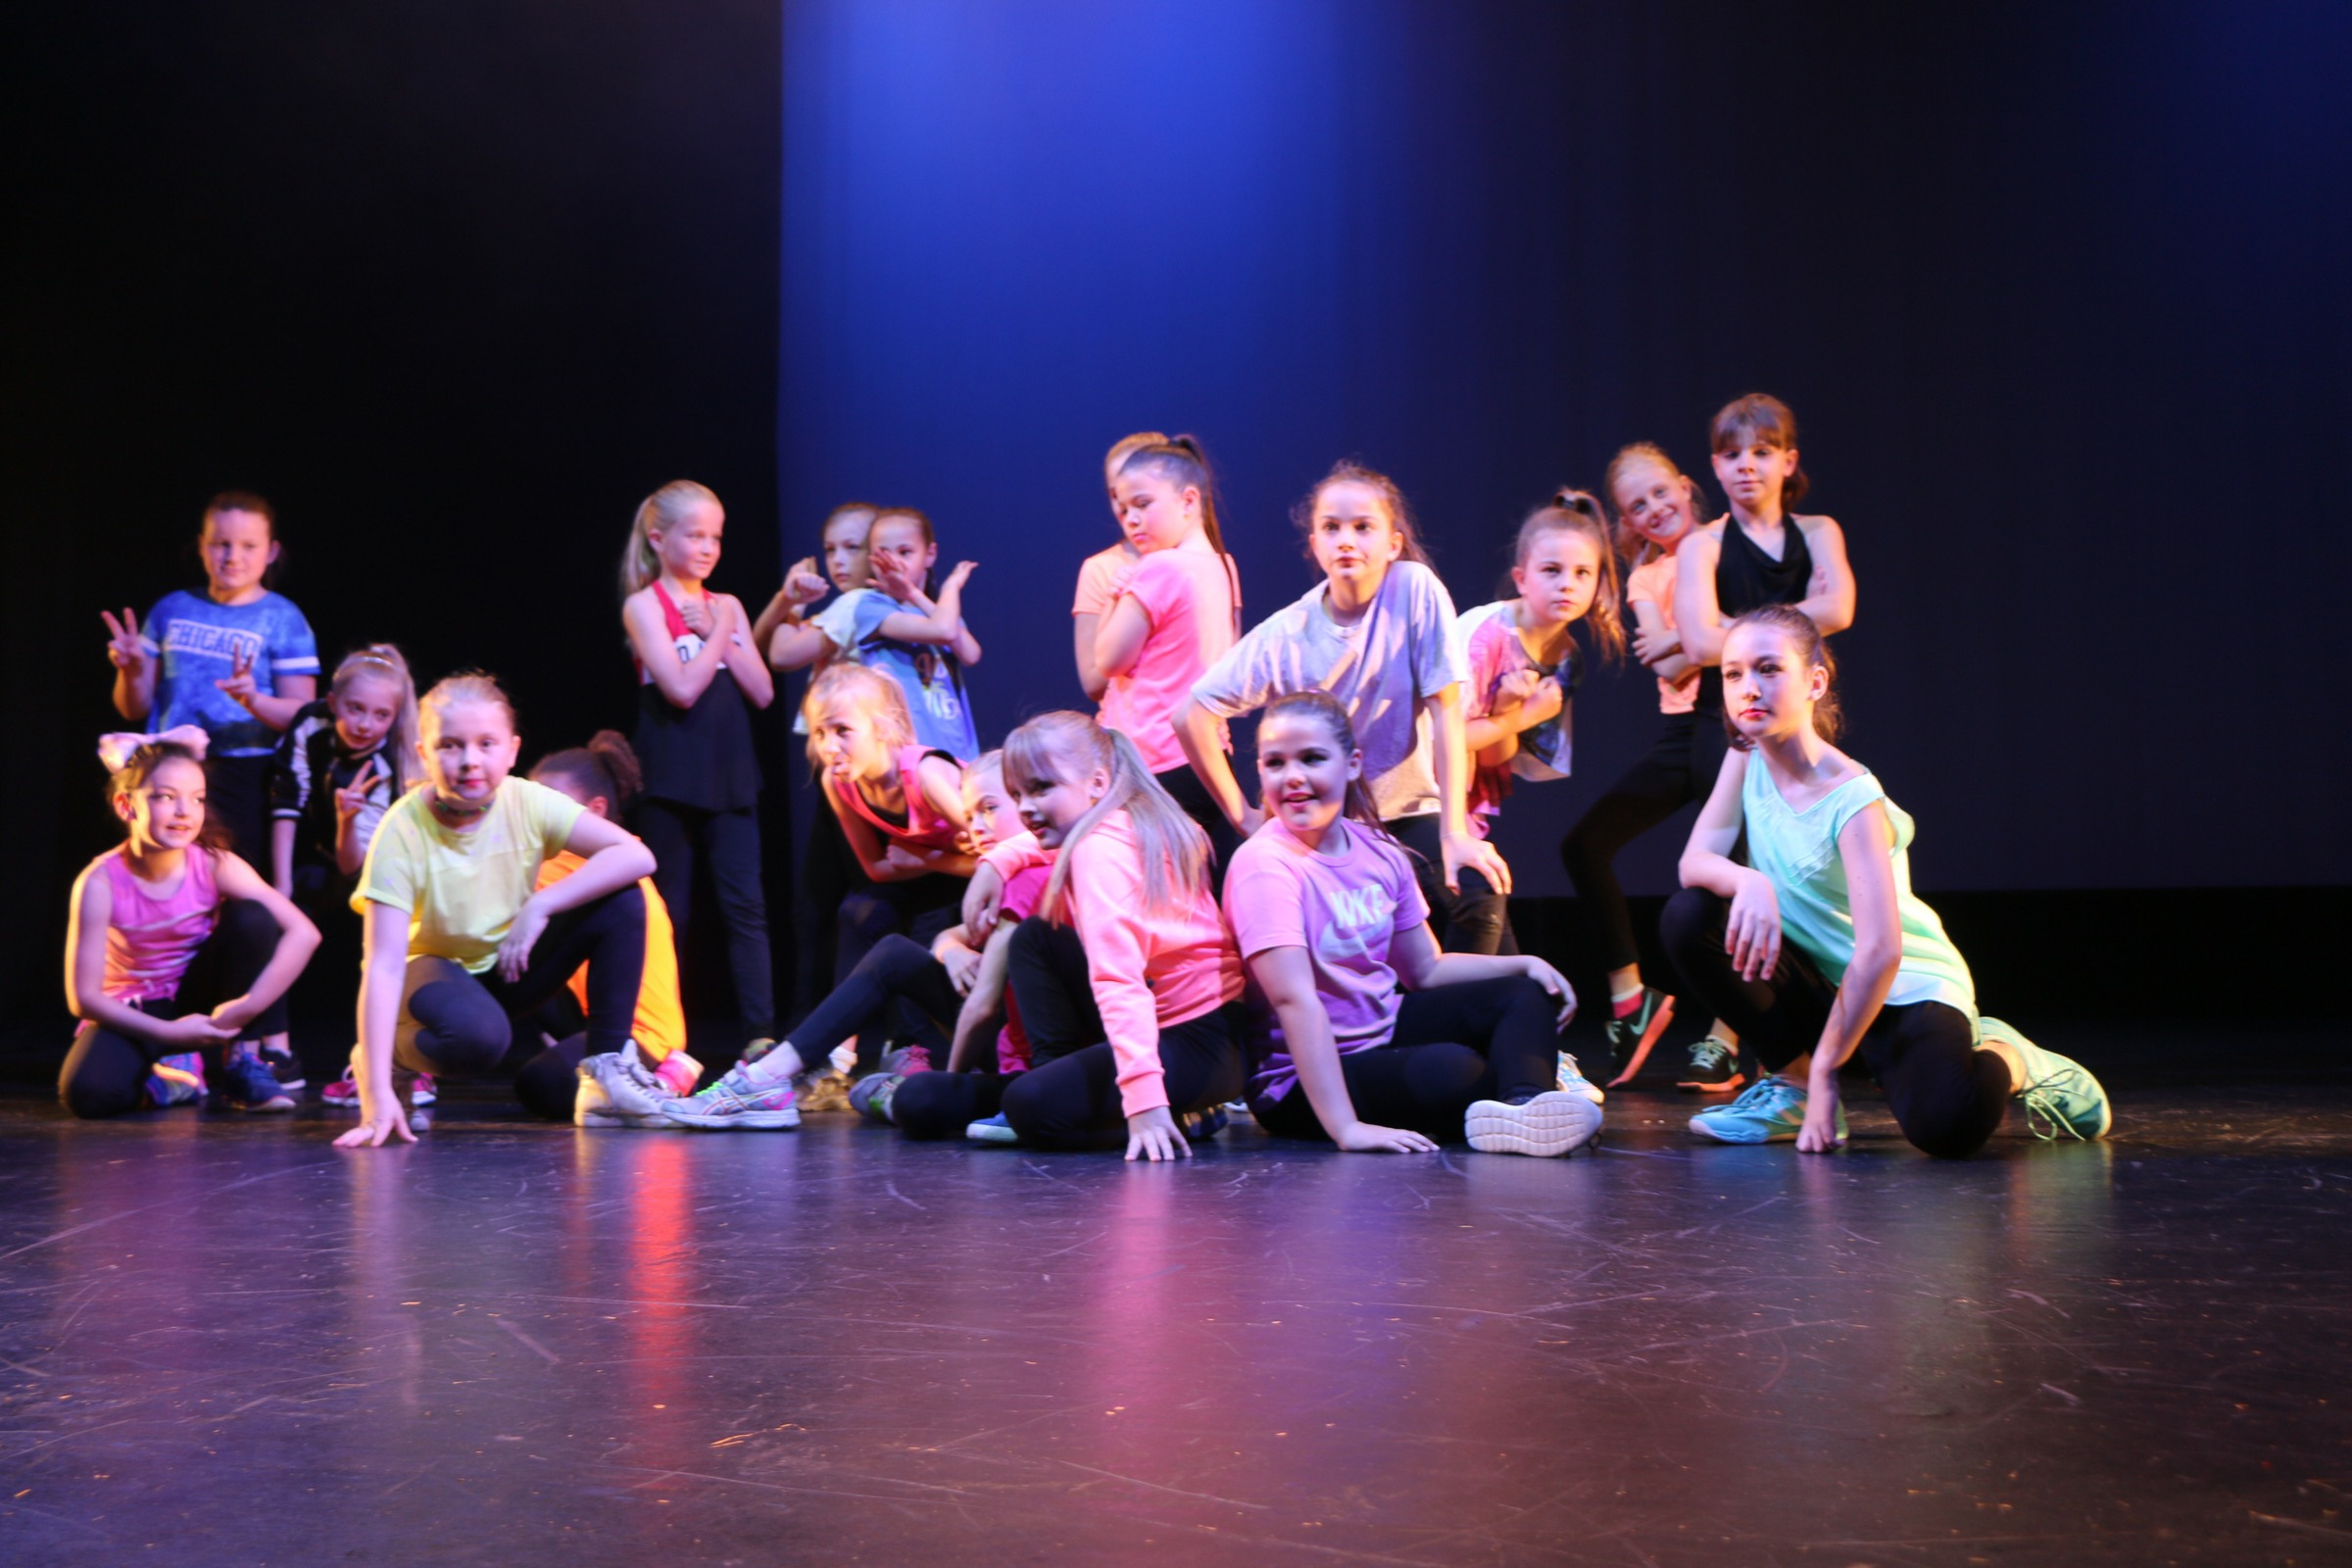 Street dance classes reigate